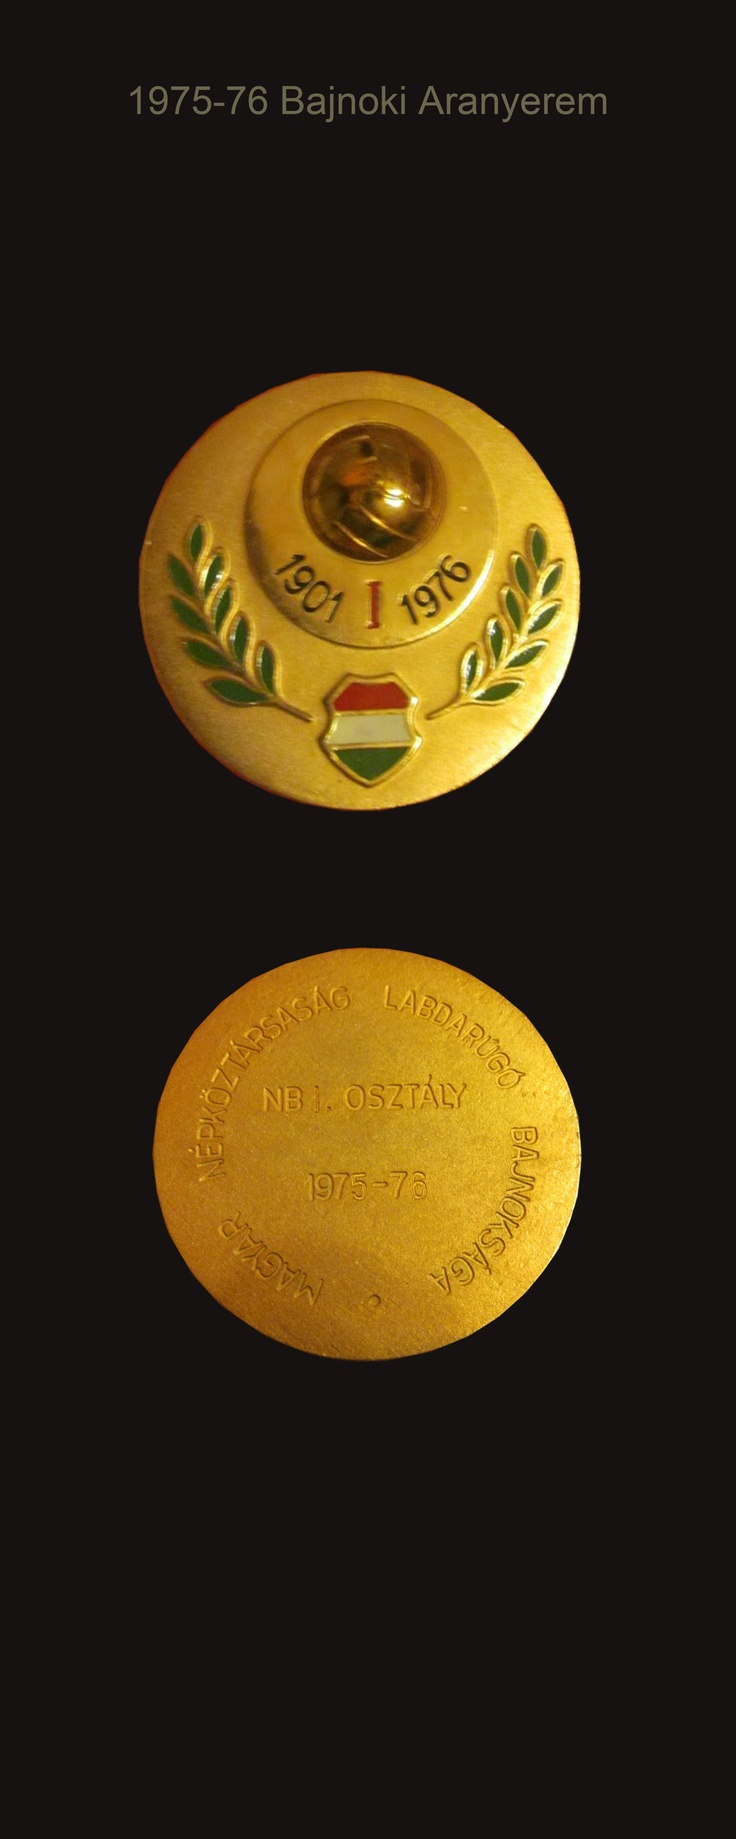 1975-76 Hungarian football Championship gold medal awarded to Ferencvaros